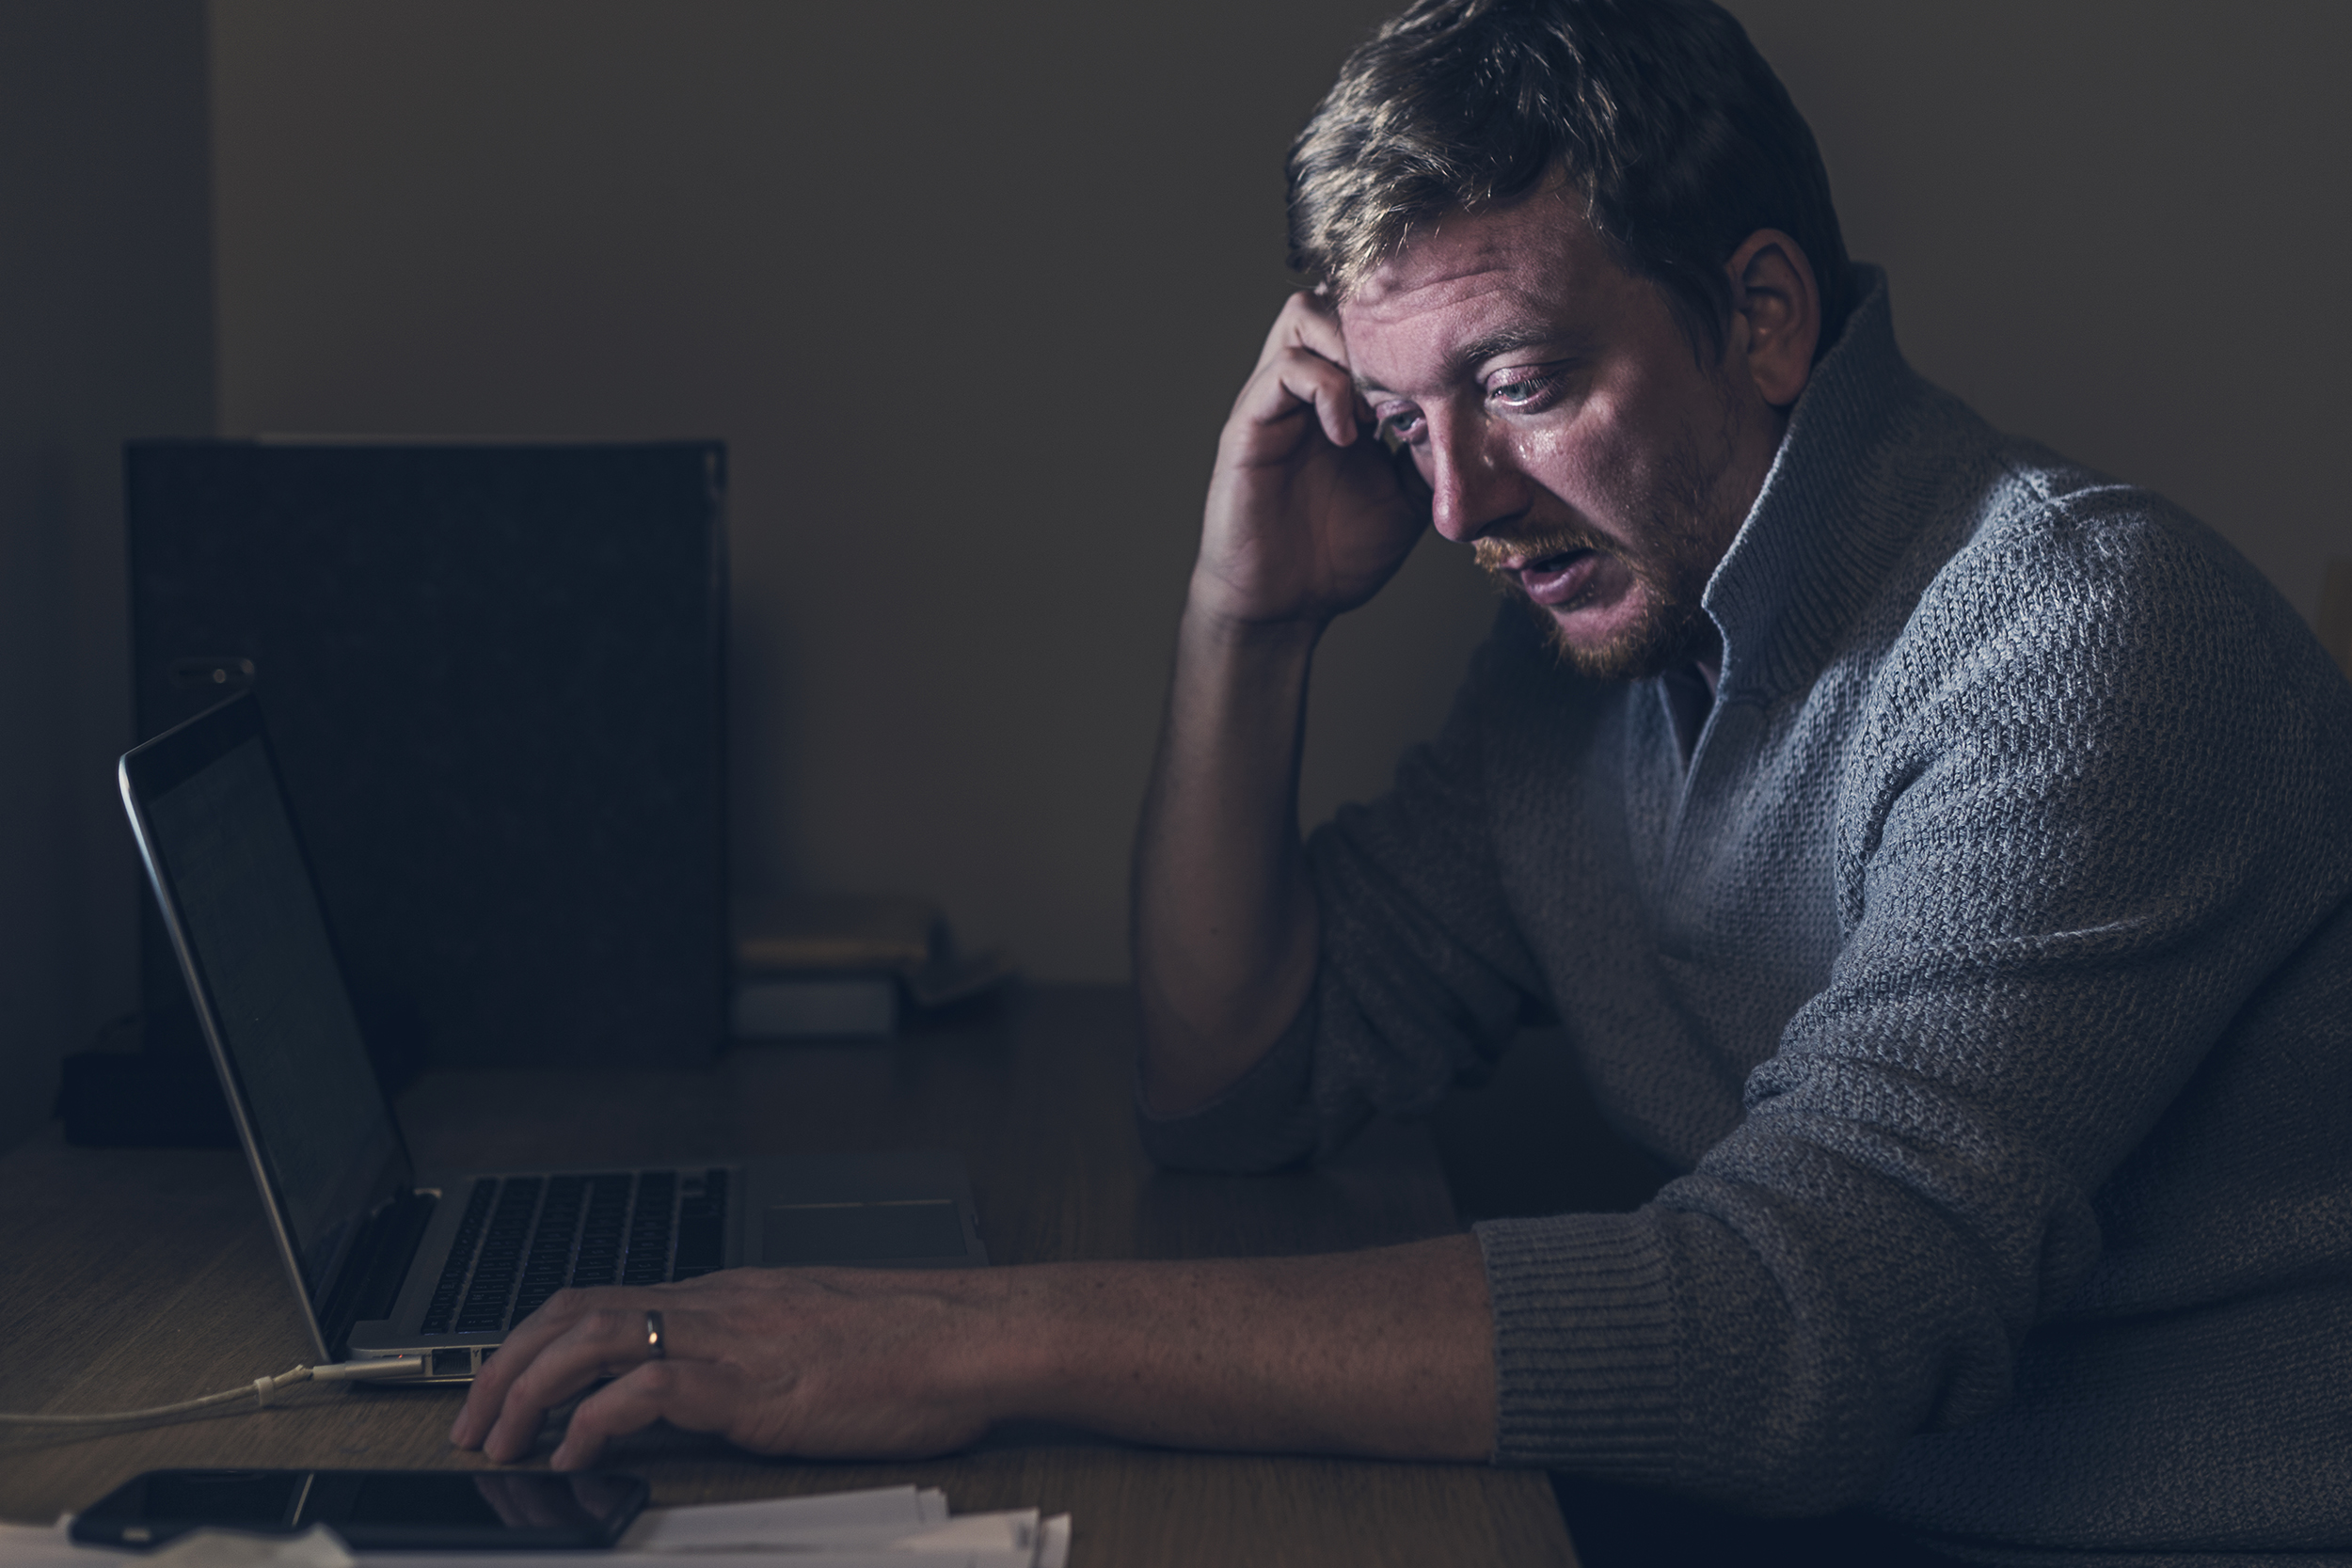 Facebook posts may point to depression, study finds